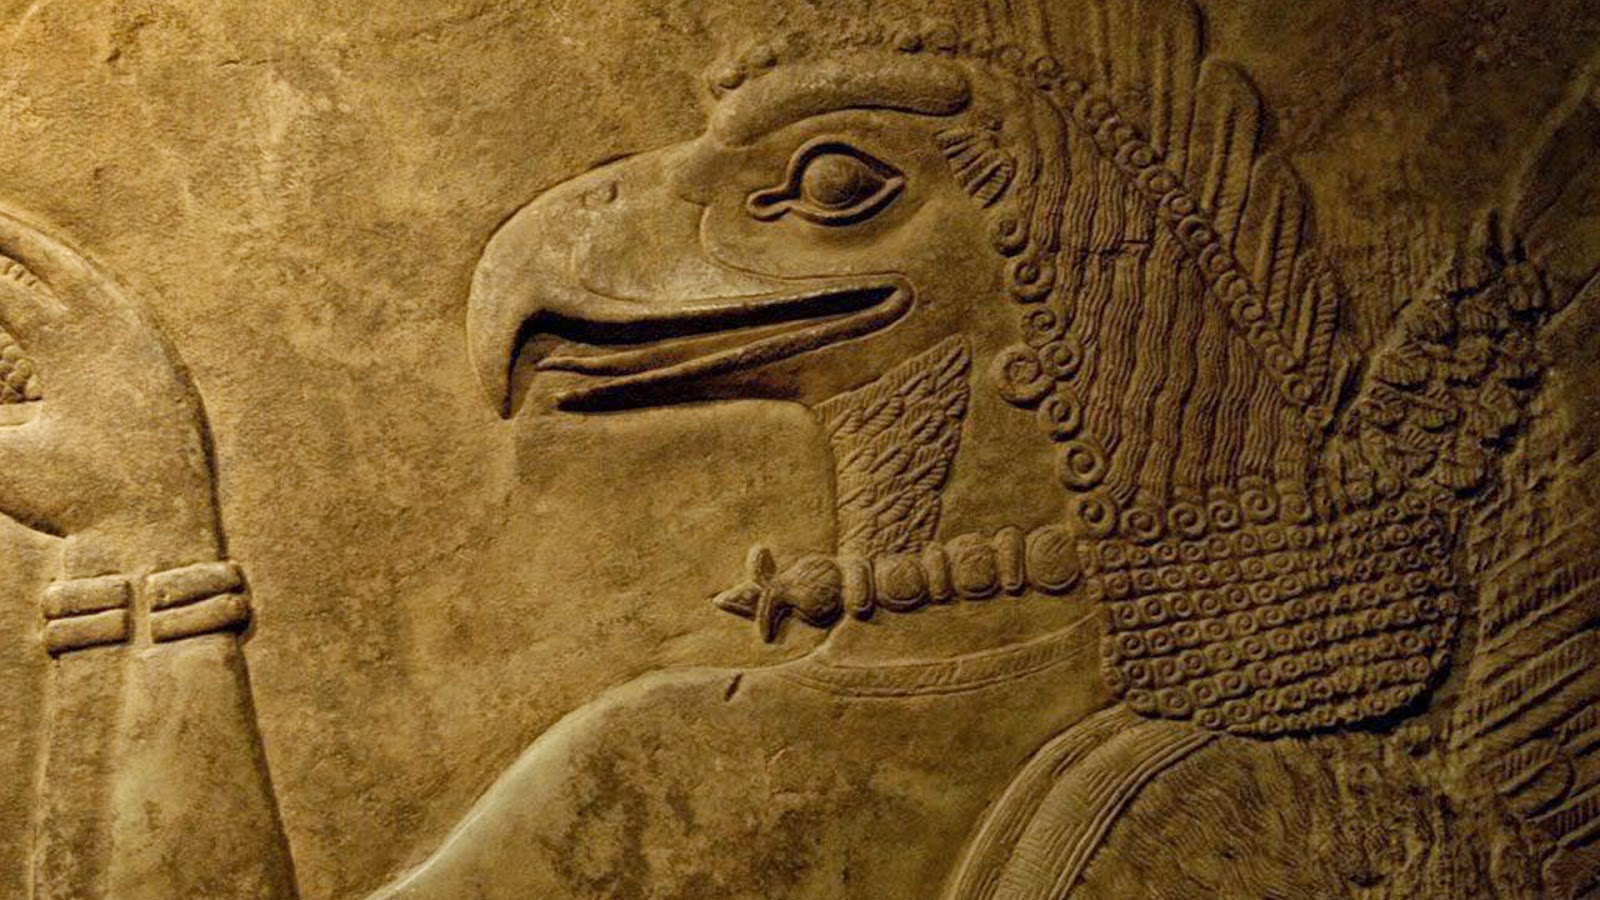 Anunnaki Helmeth Winged Suit Bird - curious